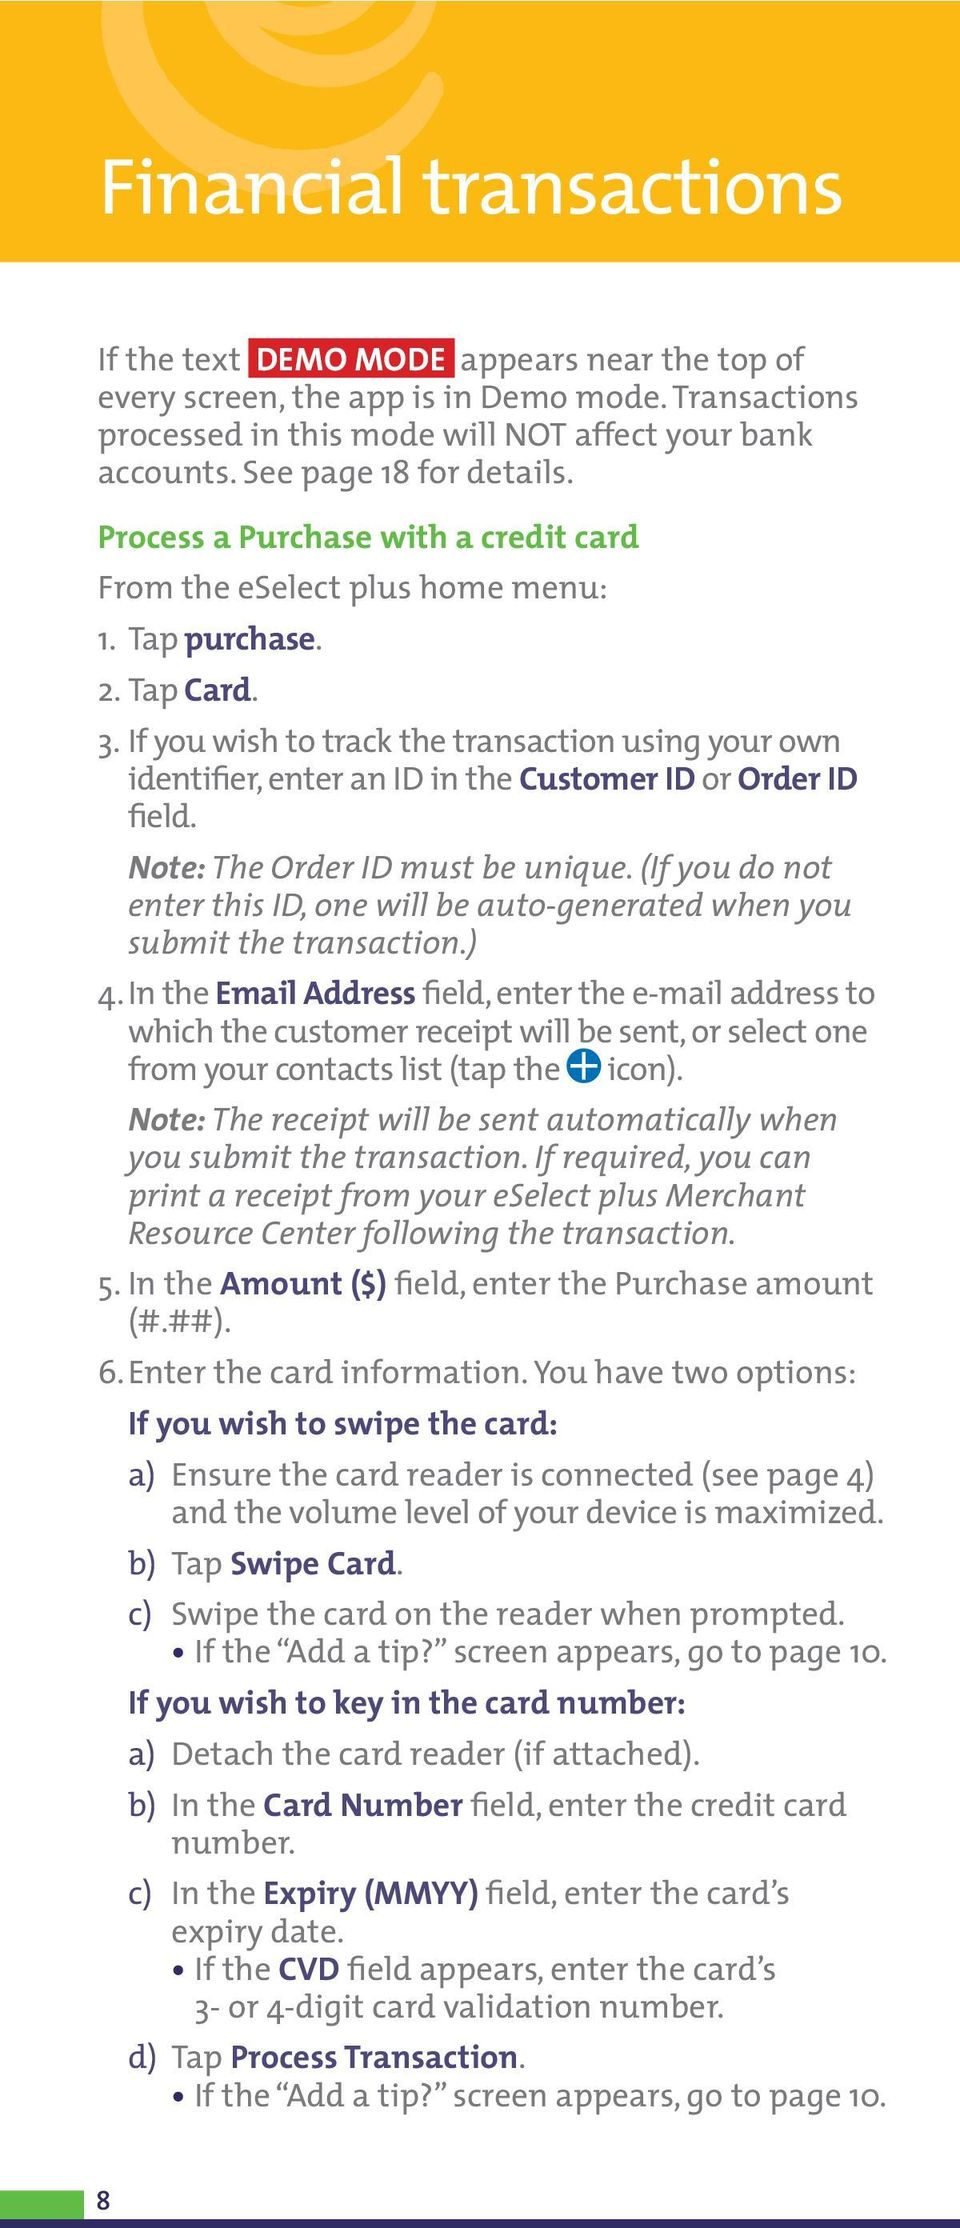 If you wish to track the transaction using your own identifier, enter an ID in the Customer ID or Order ID field. Note: The Order ID must be unique.